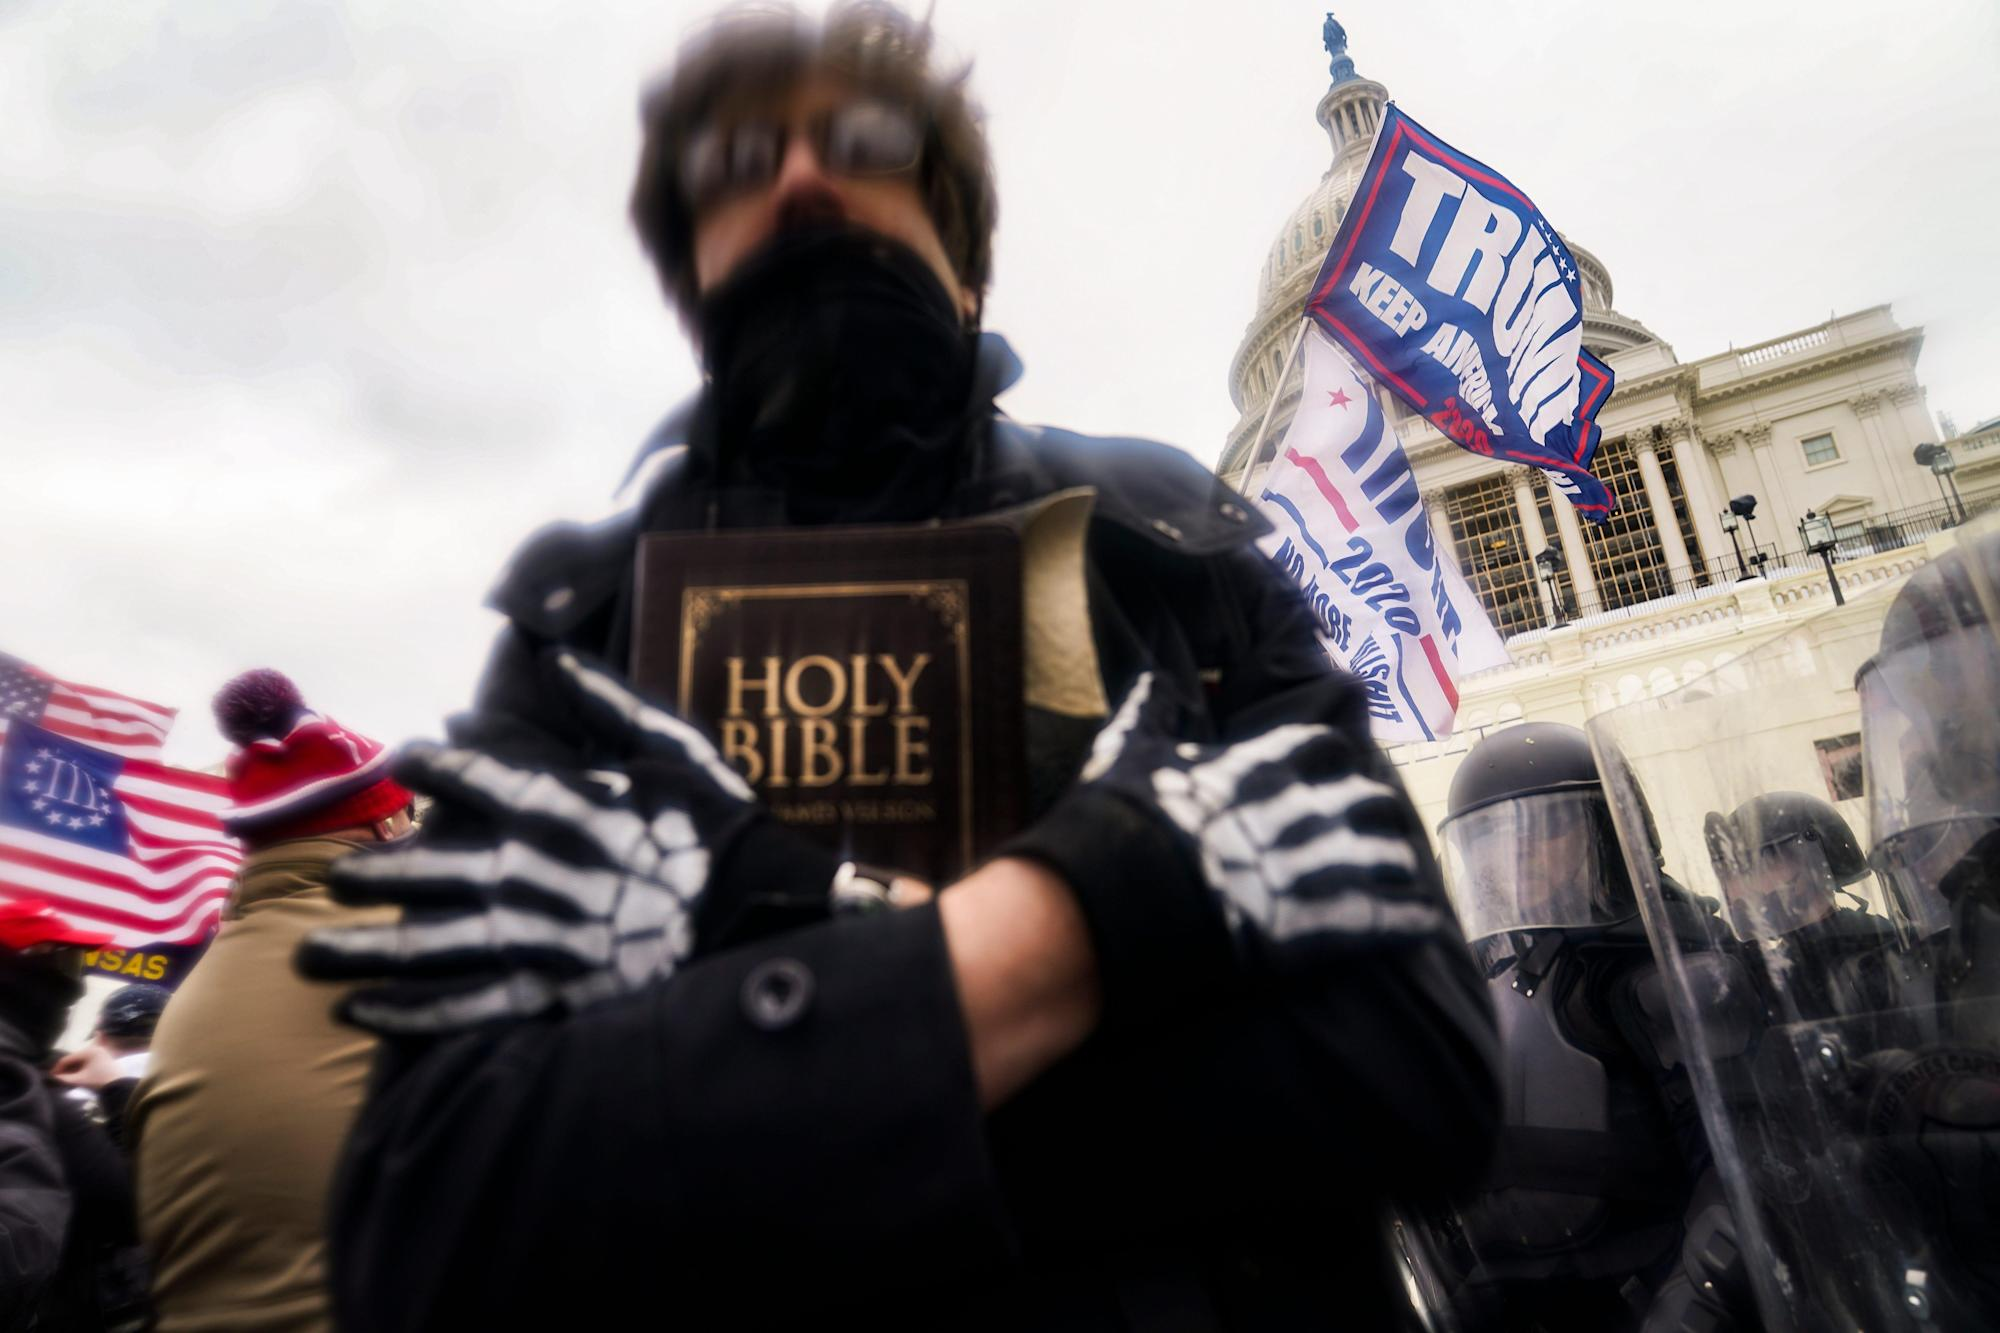 White nationalists are once again using Christian symbols to spread hate